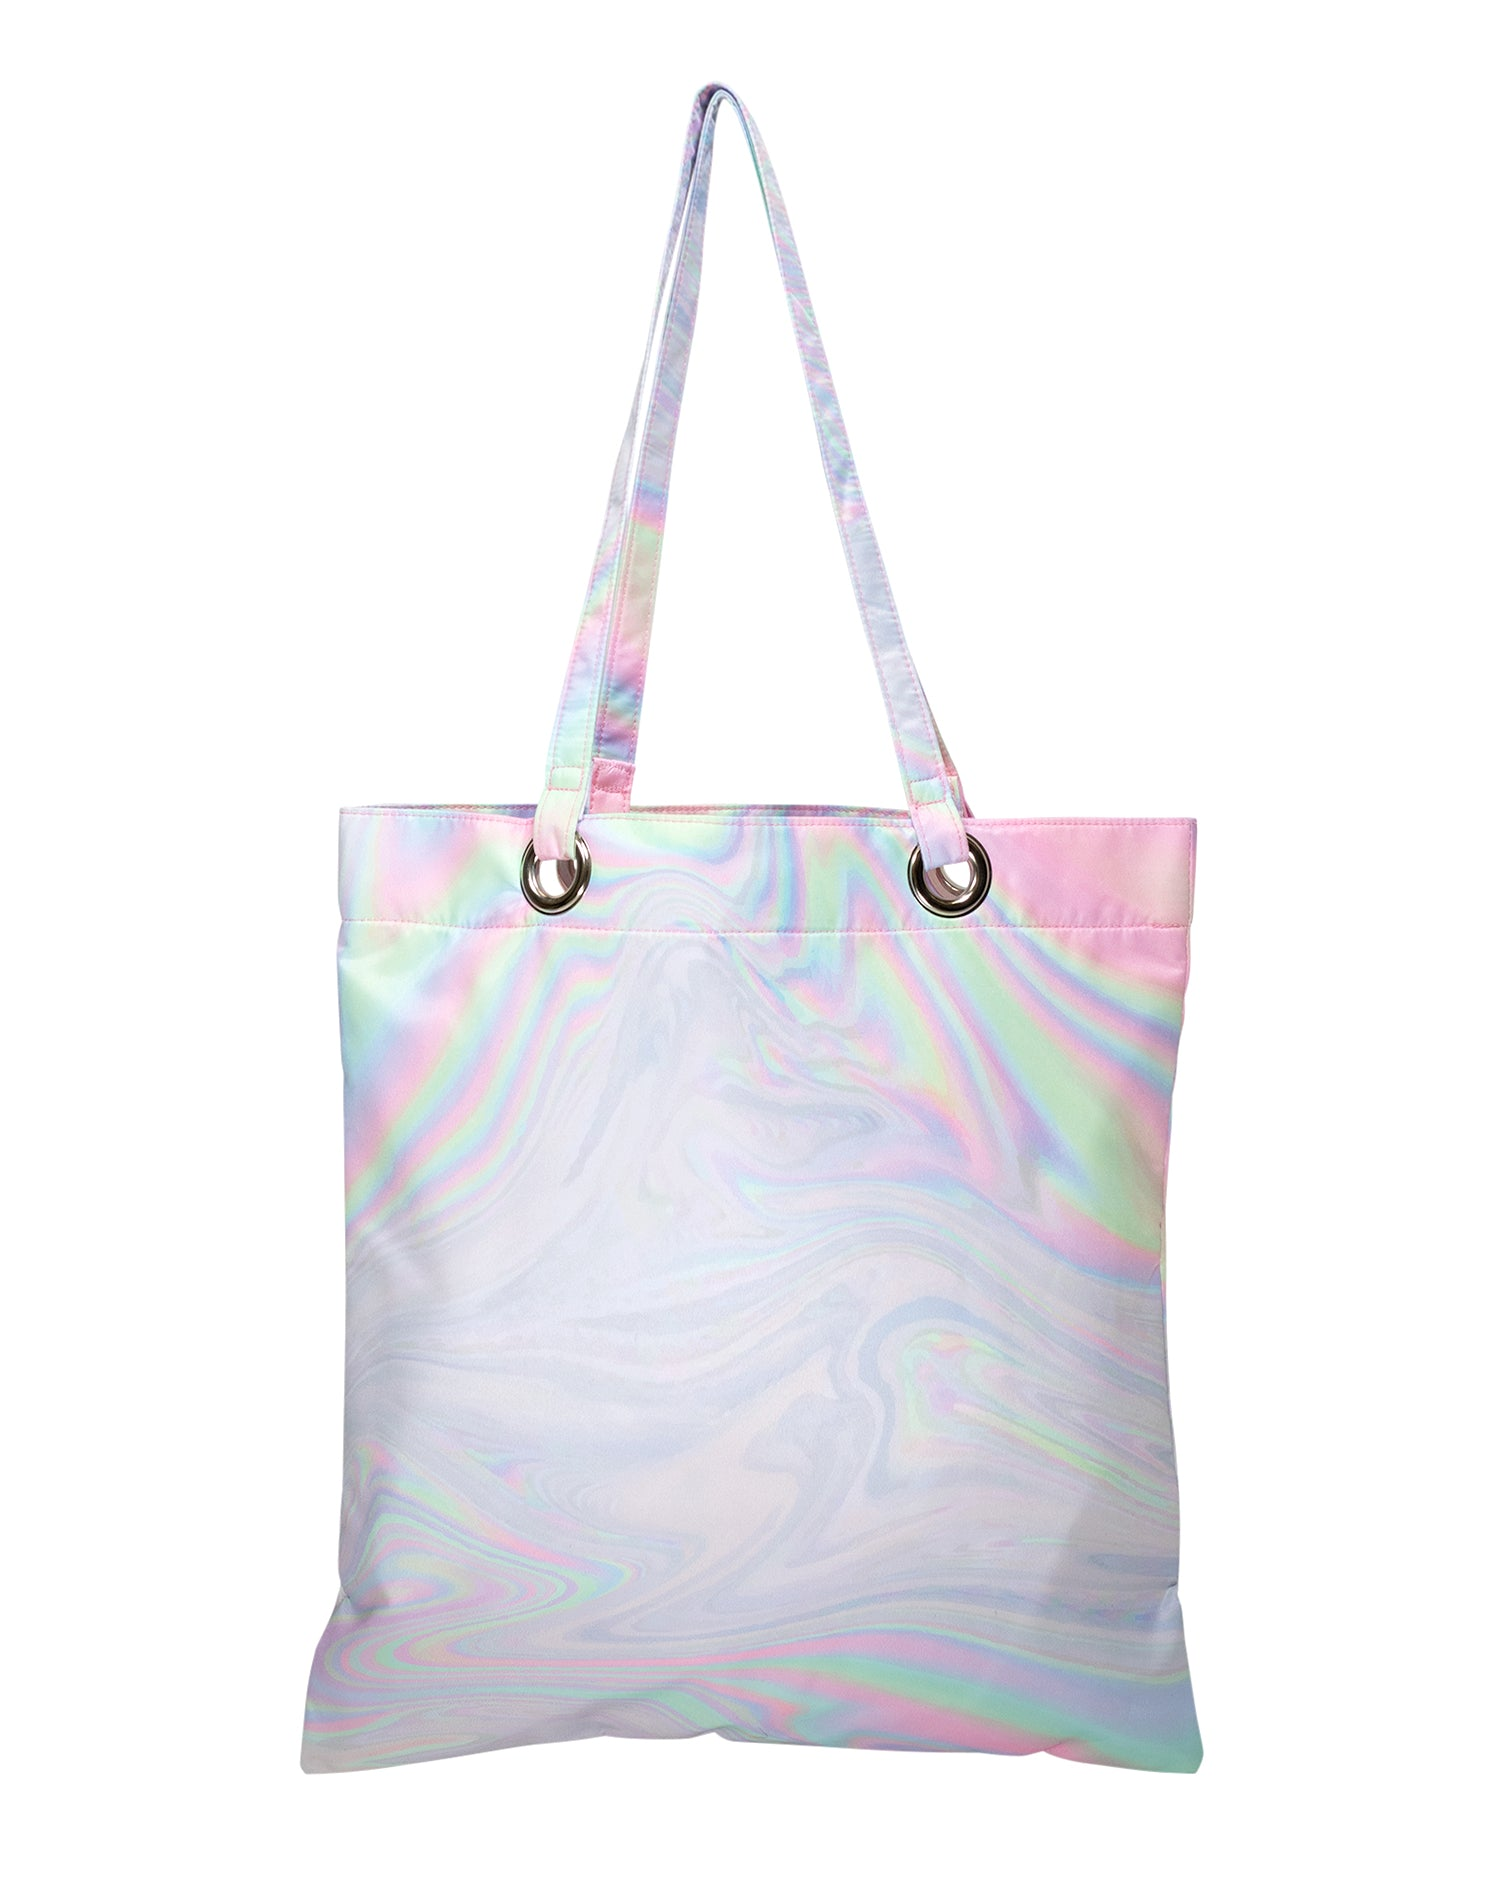 Refraction Fusion Premium Tote Bag.反射波纹高級側背袋